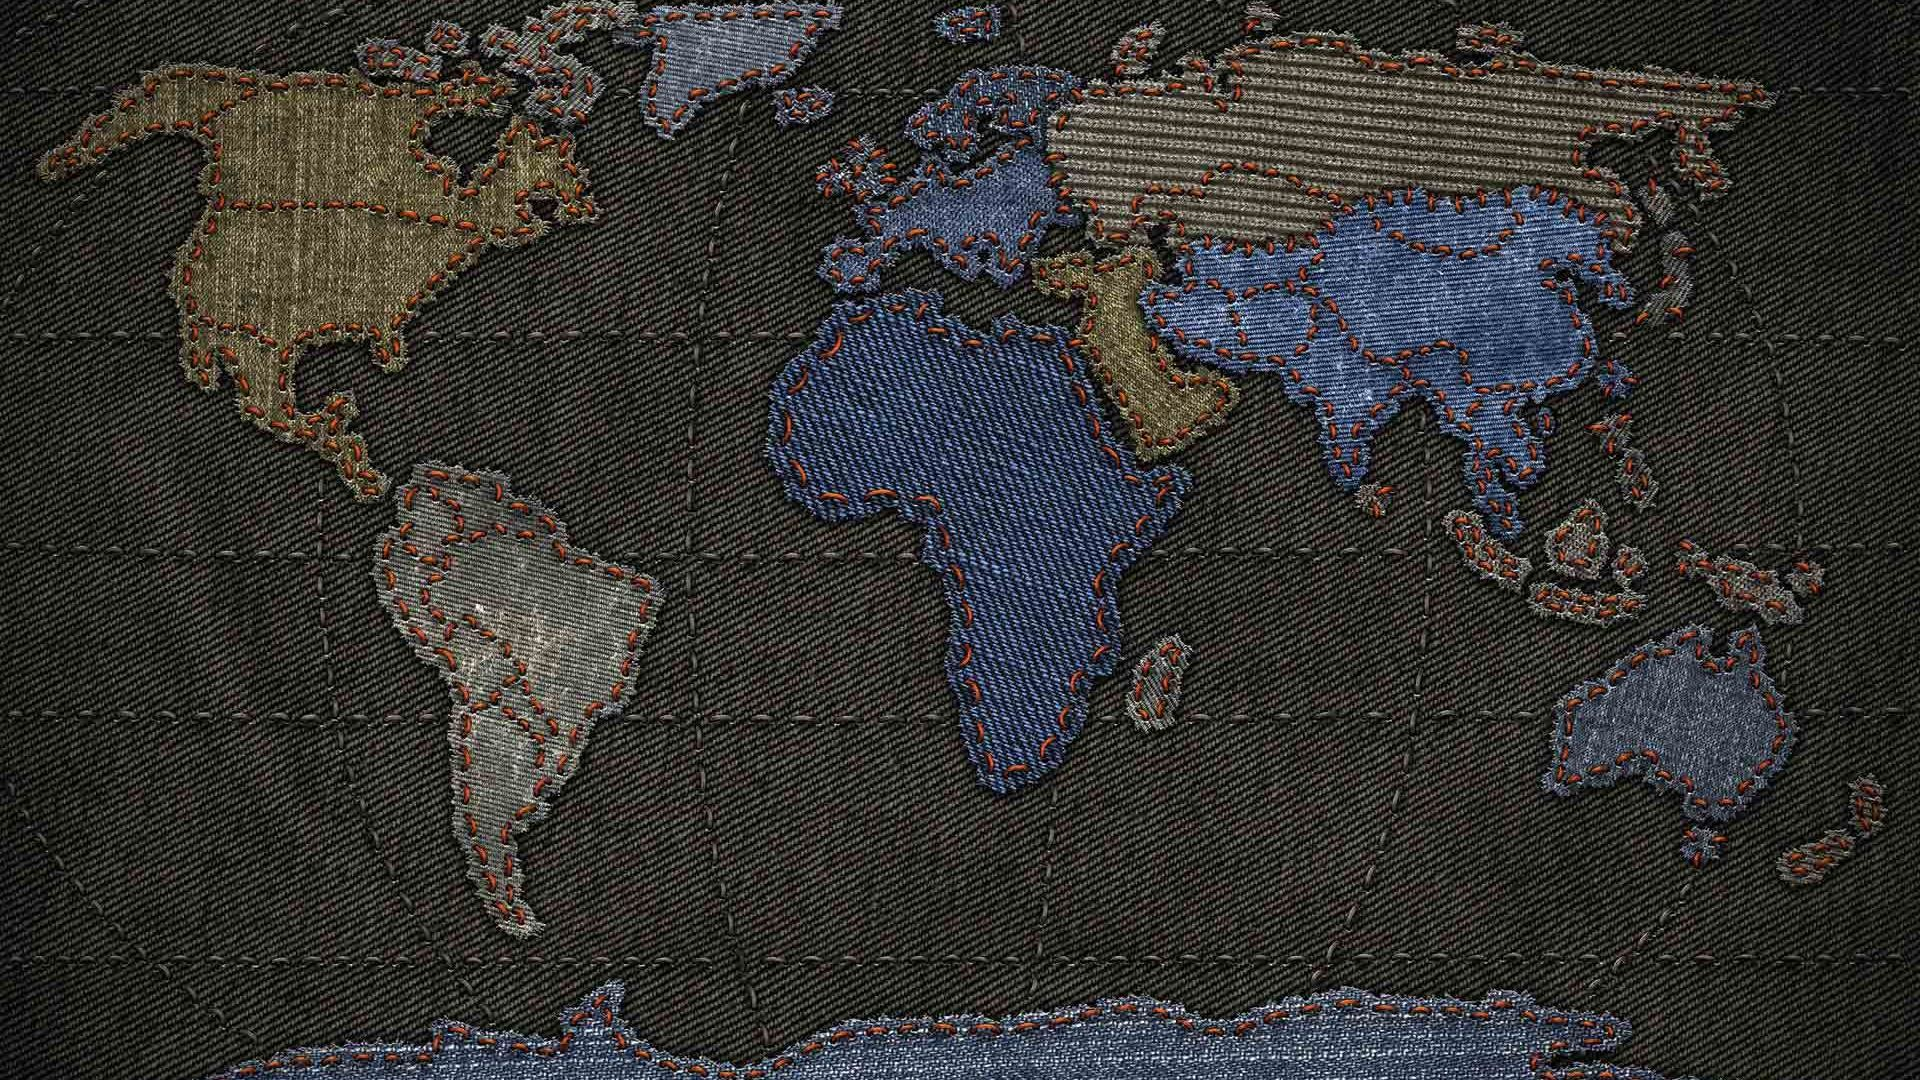 World map computer wallpaper 62 images 1920x1080 gumiabroncs Choice Image